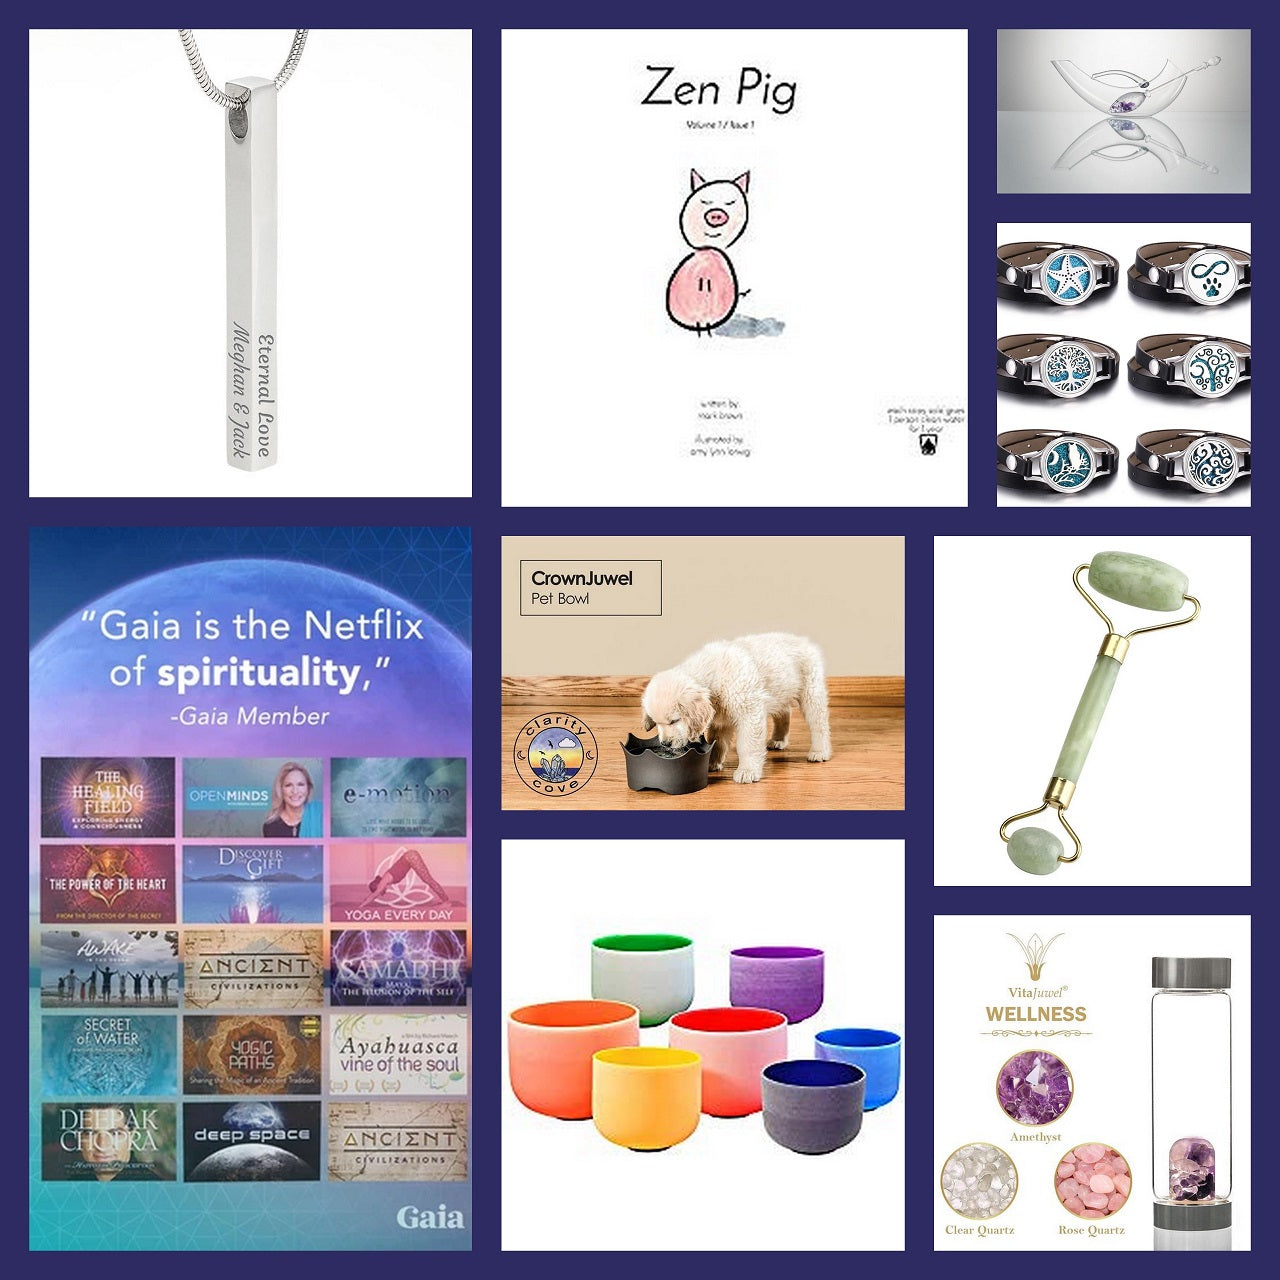 Top 9 Metaphysical & Healing Gift Ideas Guide for the 2019 Holiday Shopping Season and Black Friday